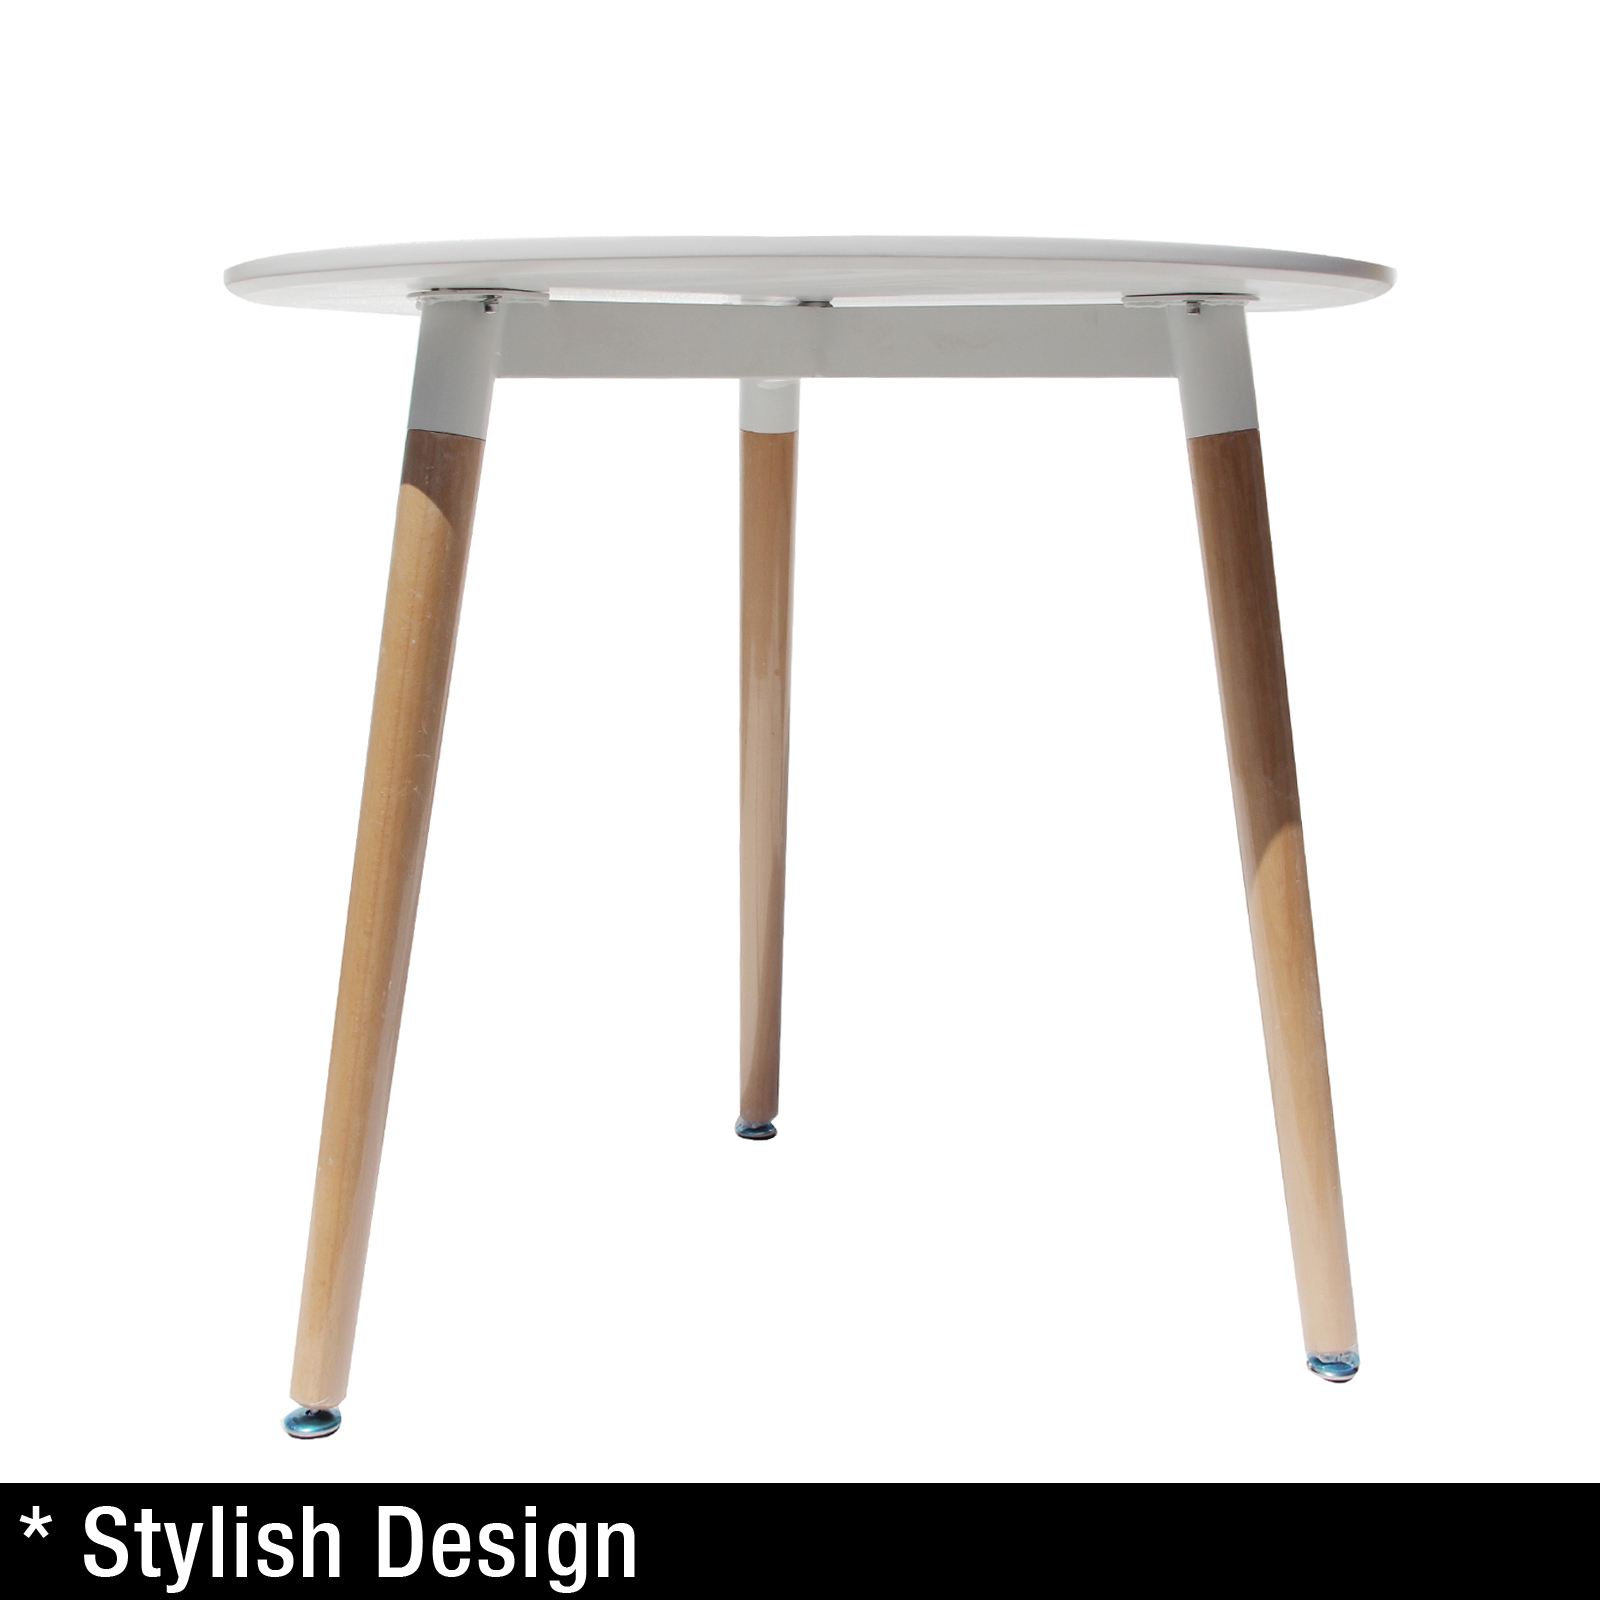 Replica eames dsw city dining table white designer kitchen matte round ebay - Replica eames dining table ...